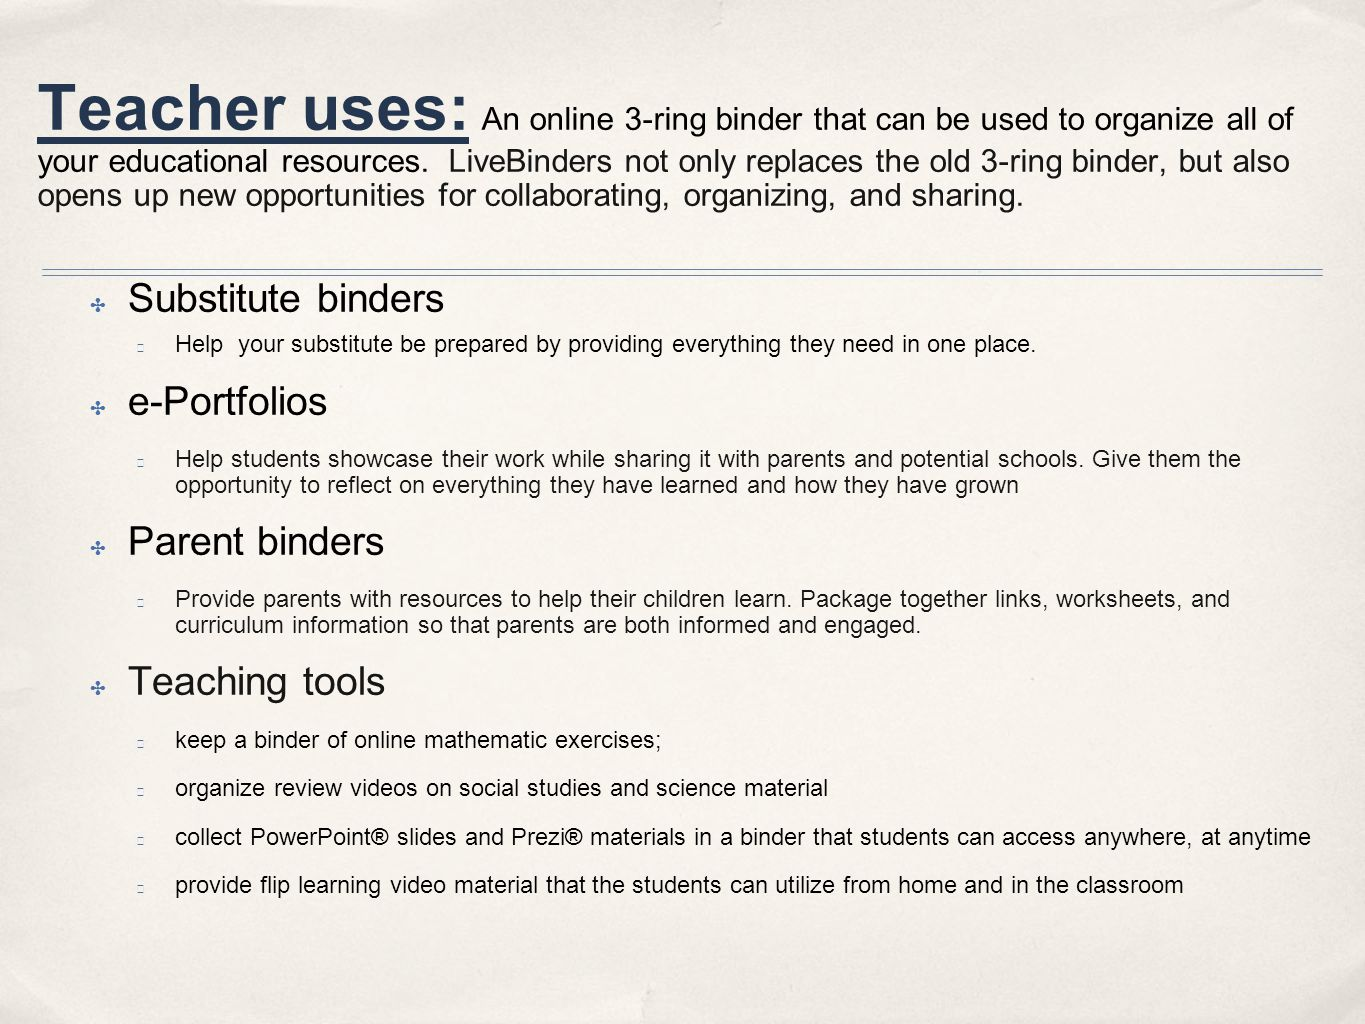 Teacher uses: An online 3-ring binder that can be used to organize all of your educational resources.